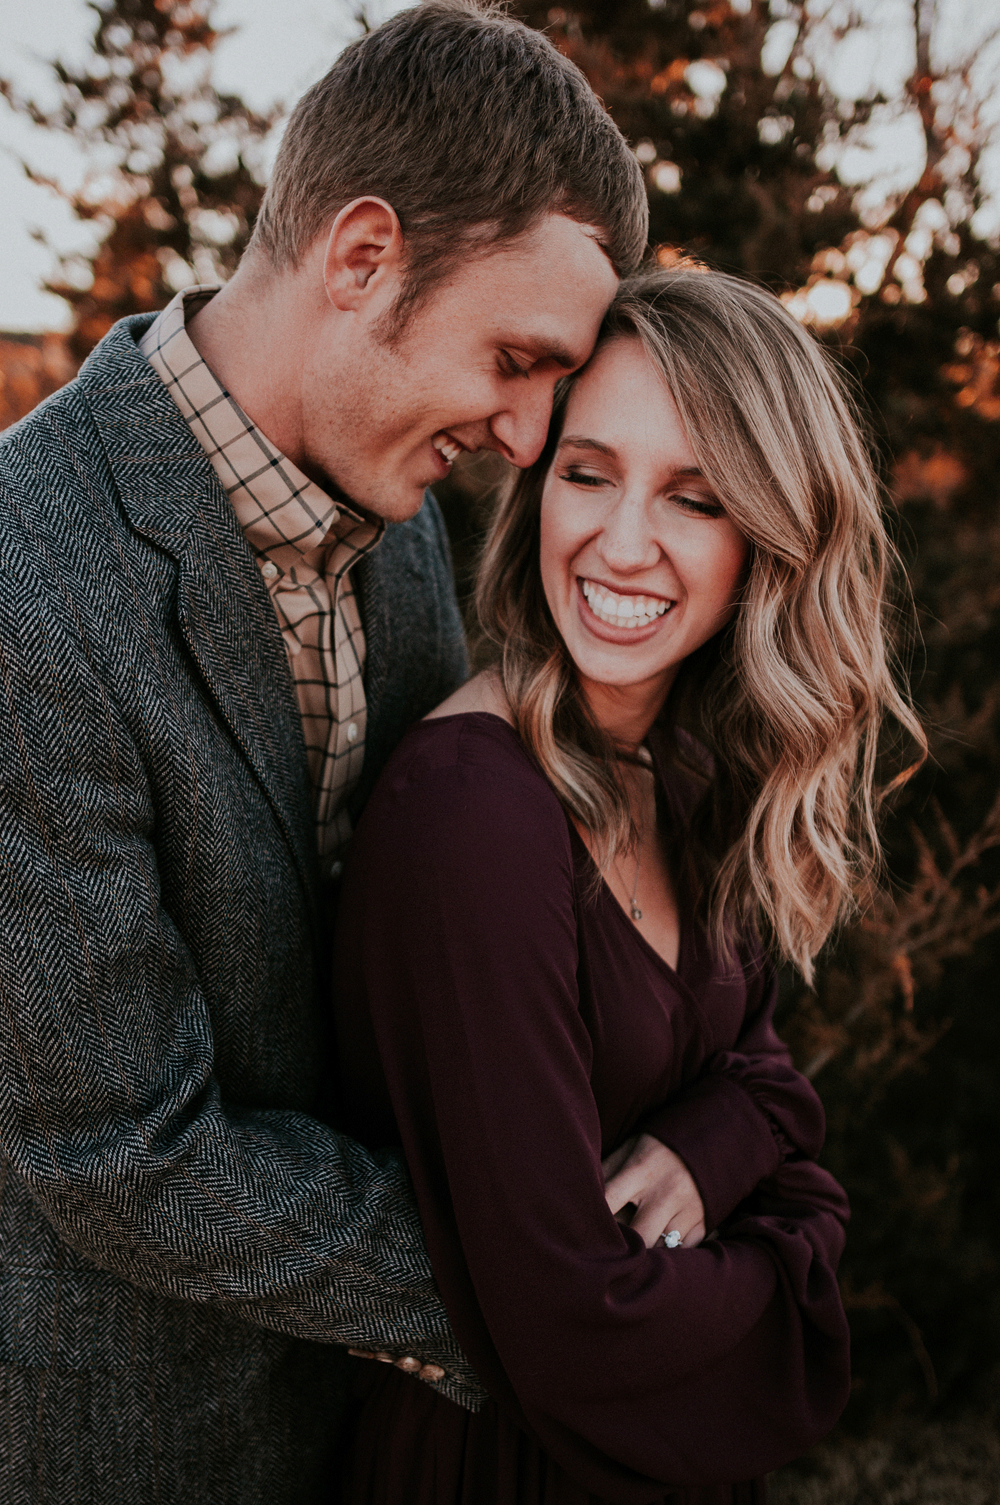 kaylie-sirek-nebraska-wedding-engagement-photographer-photography-grand-island-kearney-hastings-lincoln-41.png